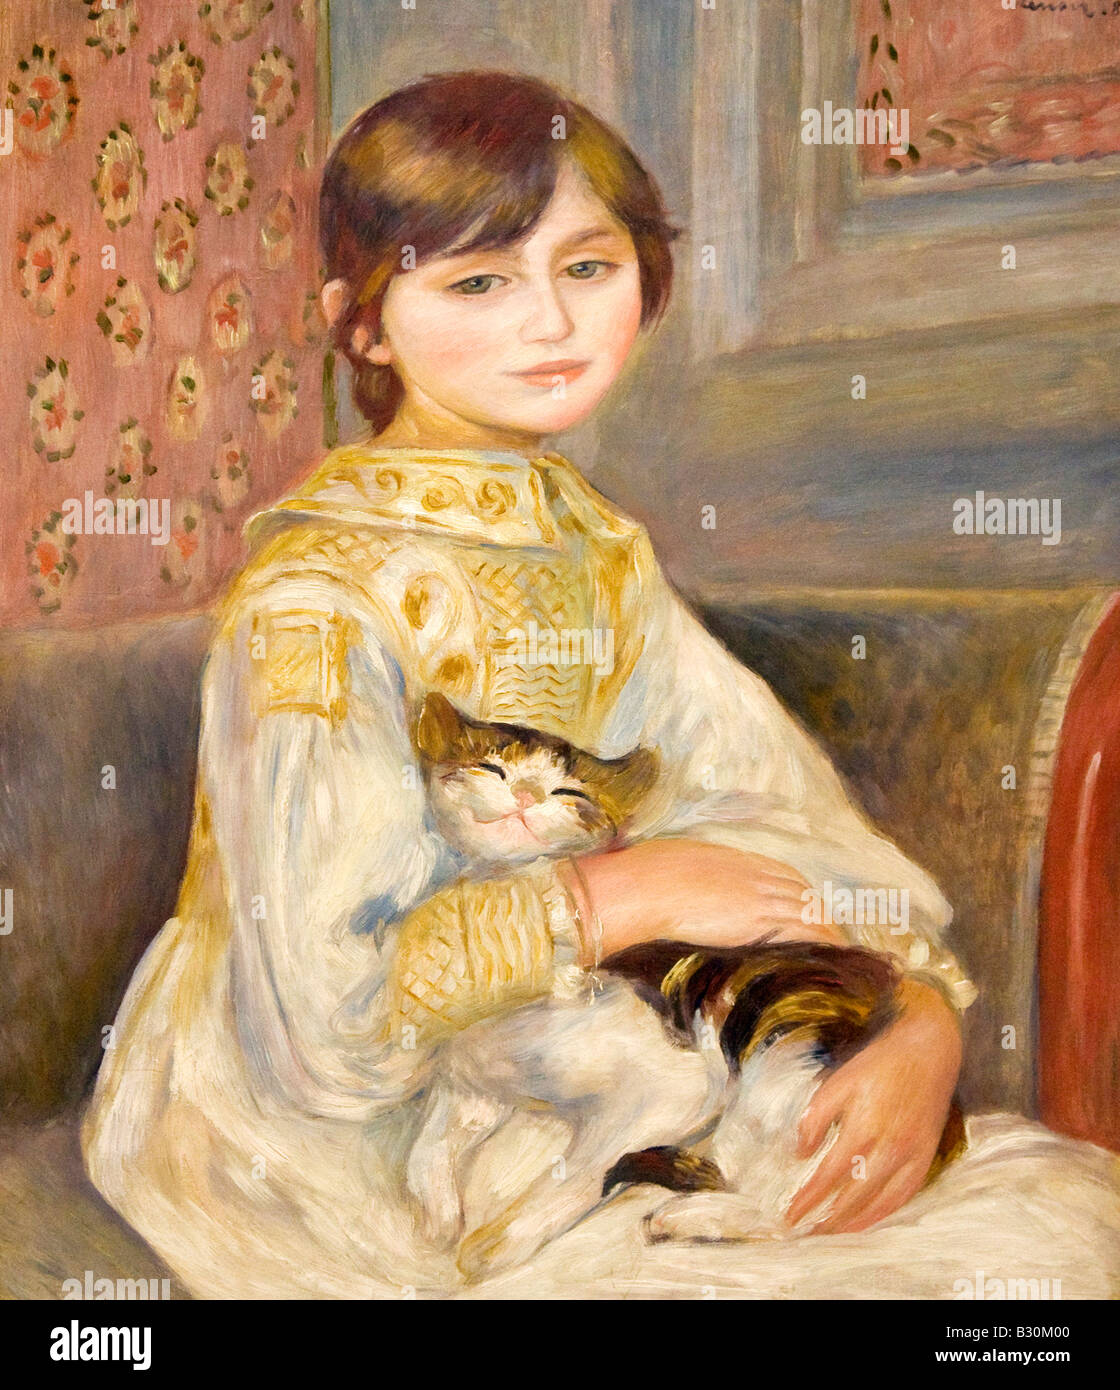 Pierre Auguste Renoir Child with Cat Julie Manet 1887 Musee D Orsay D Orsay Museum and Art Gallery Paris France - Stock Image